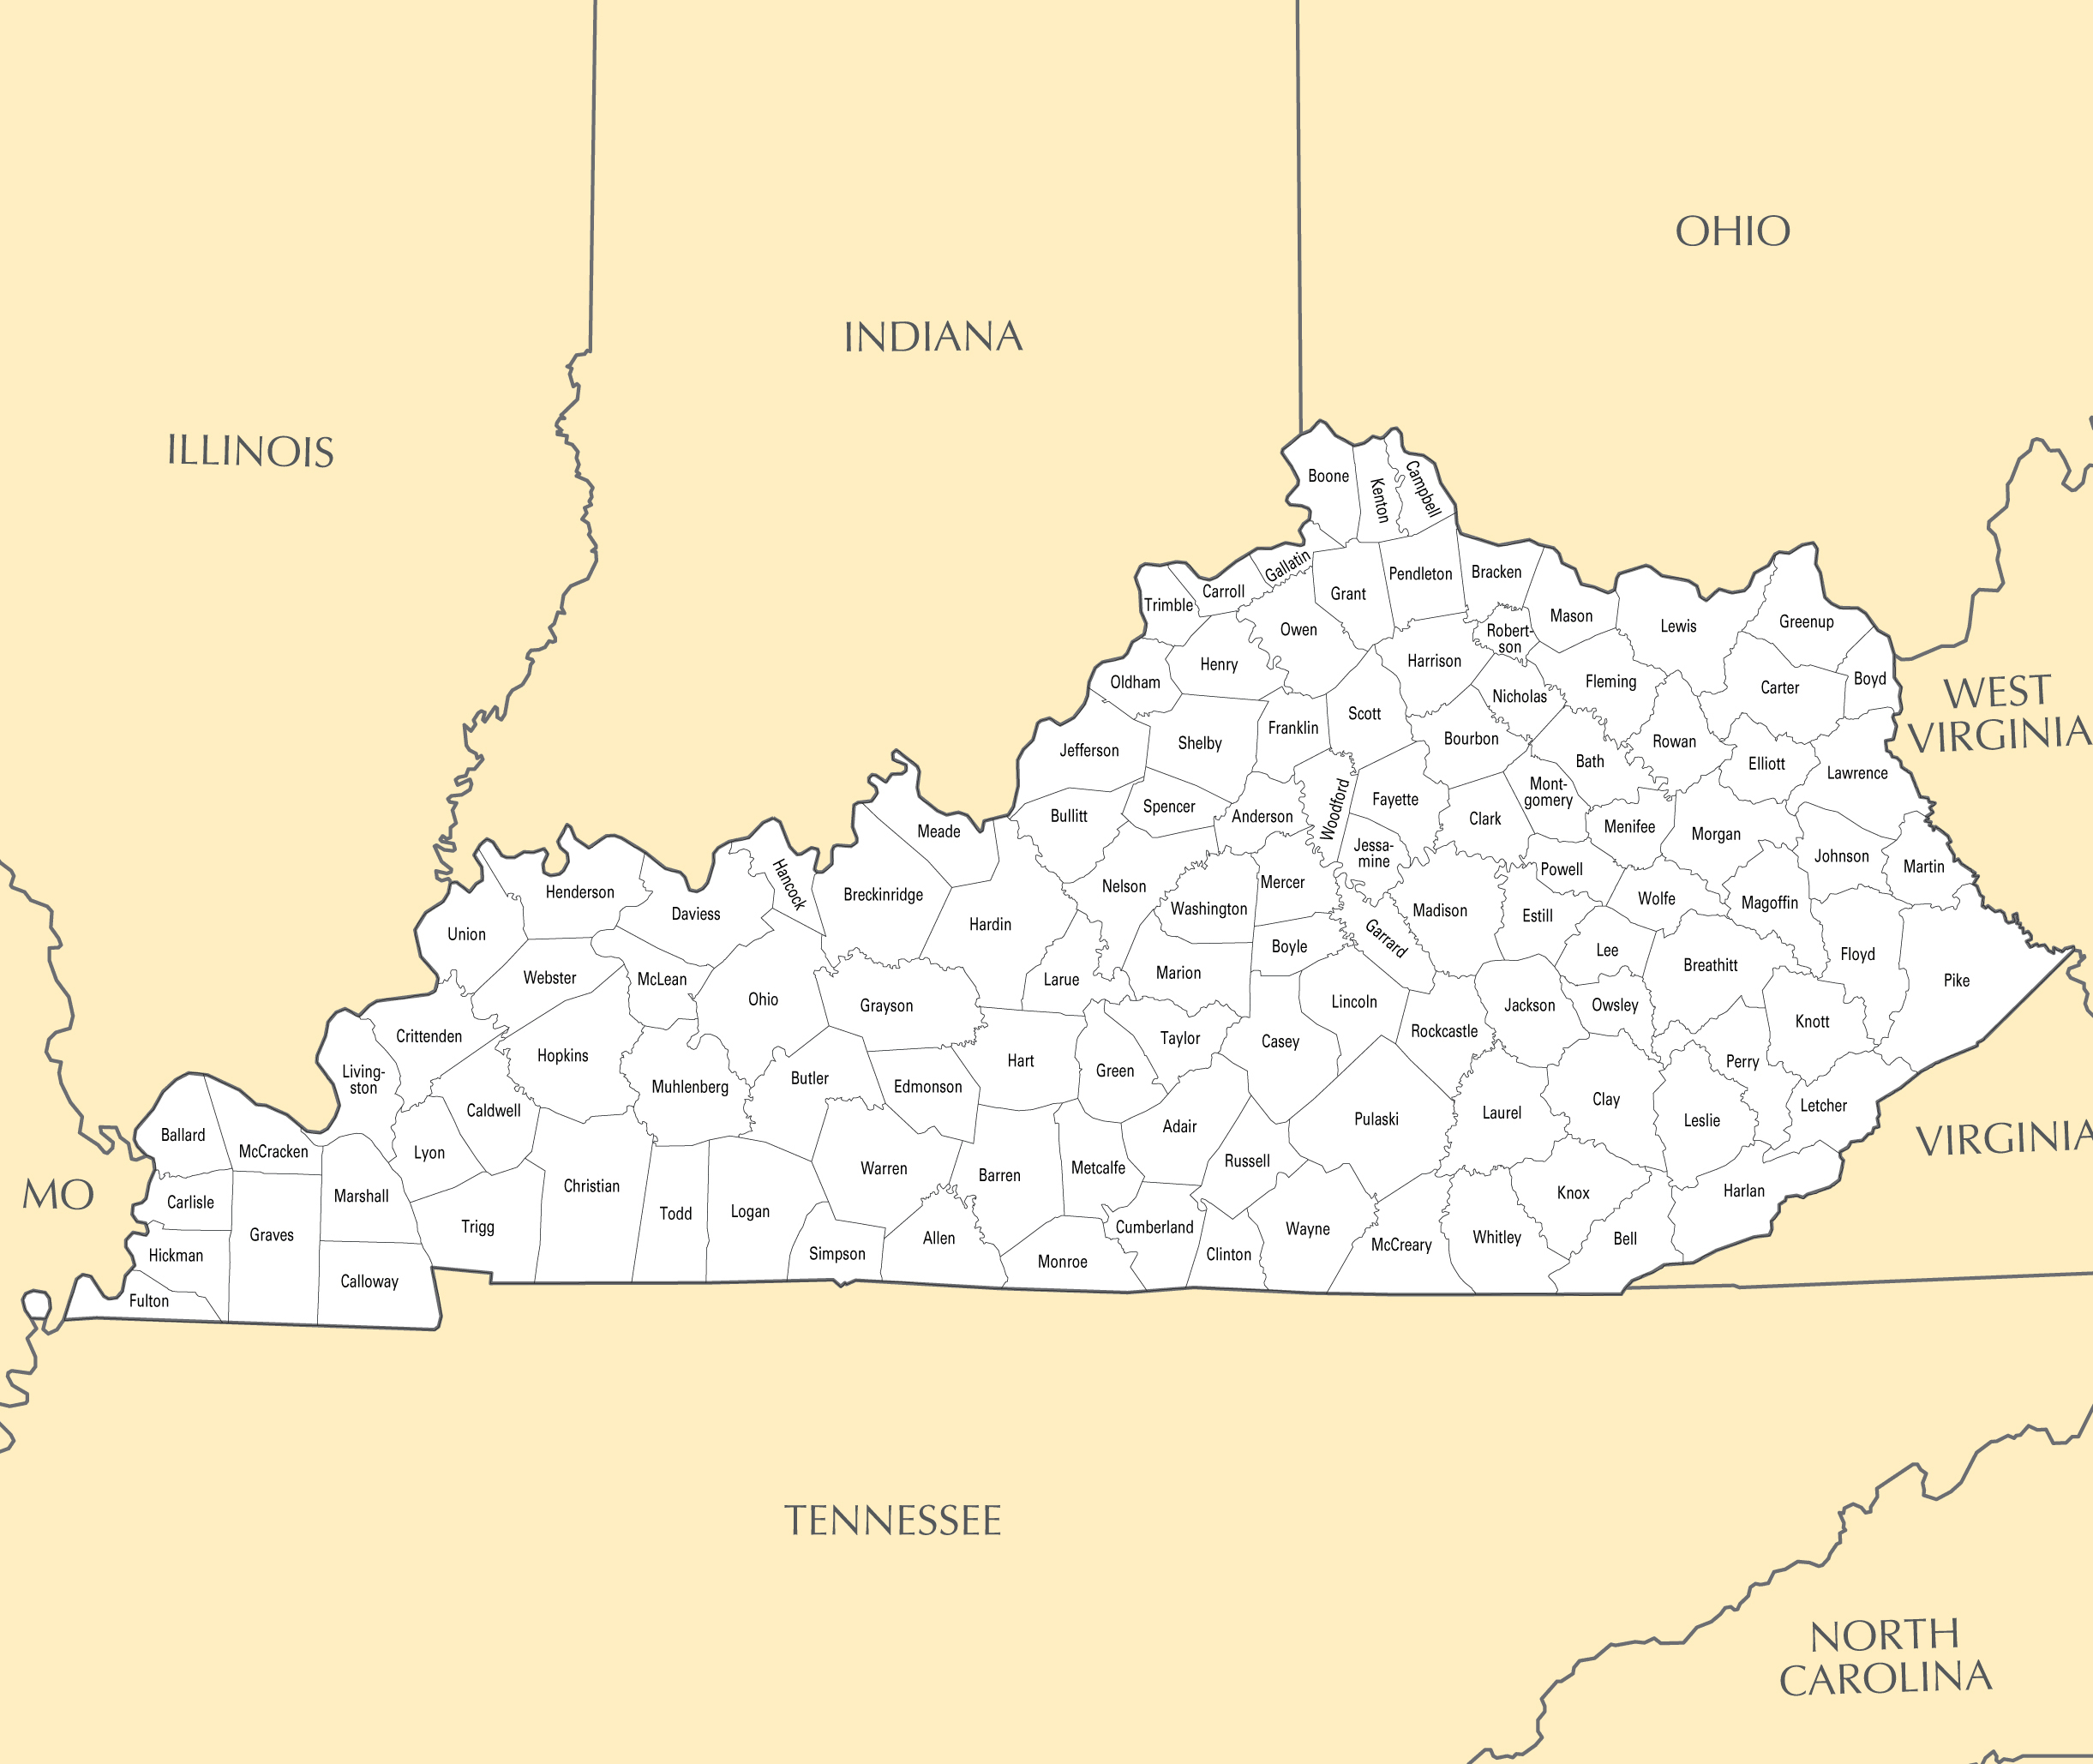 Large administrative map of Kentucky state with major cities ... on map of petersburg kentucky, map of bowling green kentucky, map of kentucky state, map of united states of america, map illinois cities, map of tennessee, map of loretto kentucky, map of kentucky roads, map of kentucky county, map of kentucky usa, map of kentucky lakes, map of kentucky counties, map of newport kentucky, map of kentucky zip codes, kentucky towns and cities, map of north carolina, map of ky, map of western kentucky, map of kentucky streets, map of arkansas,